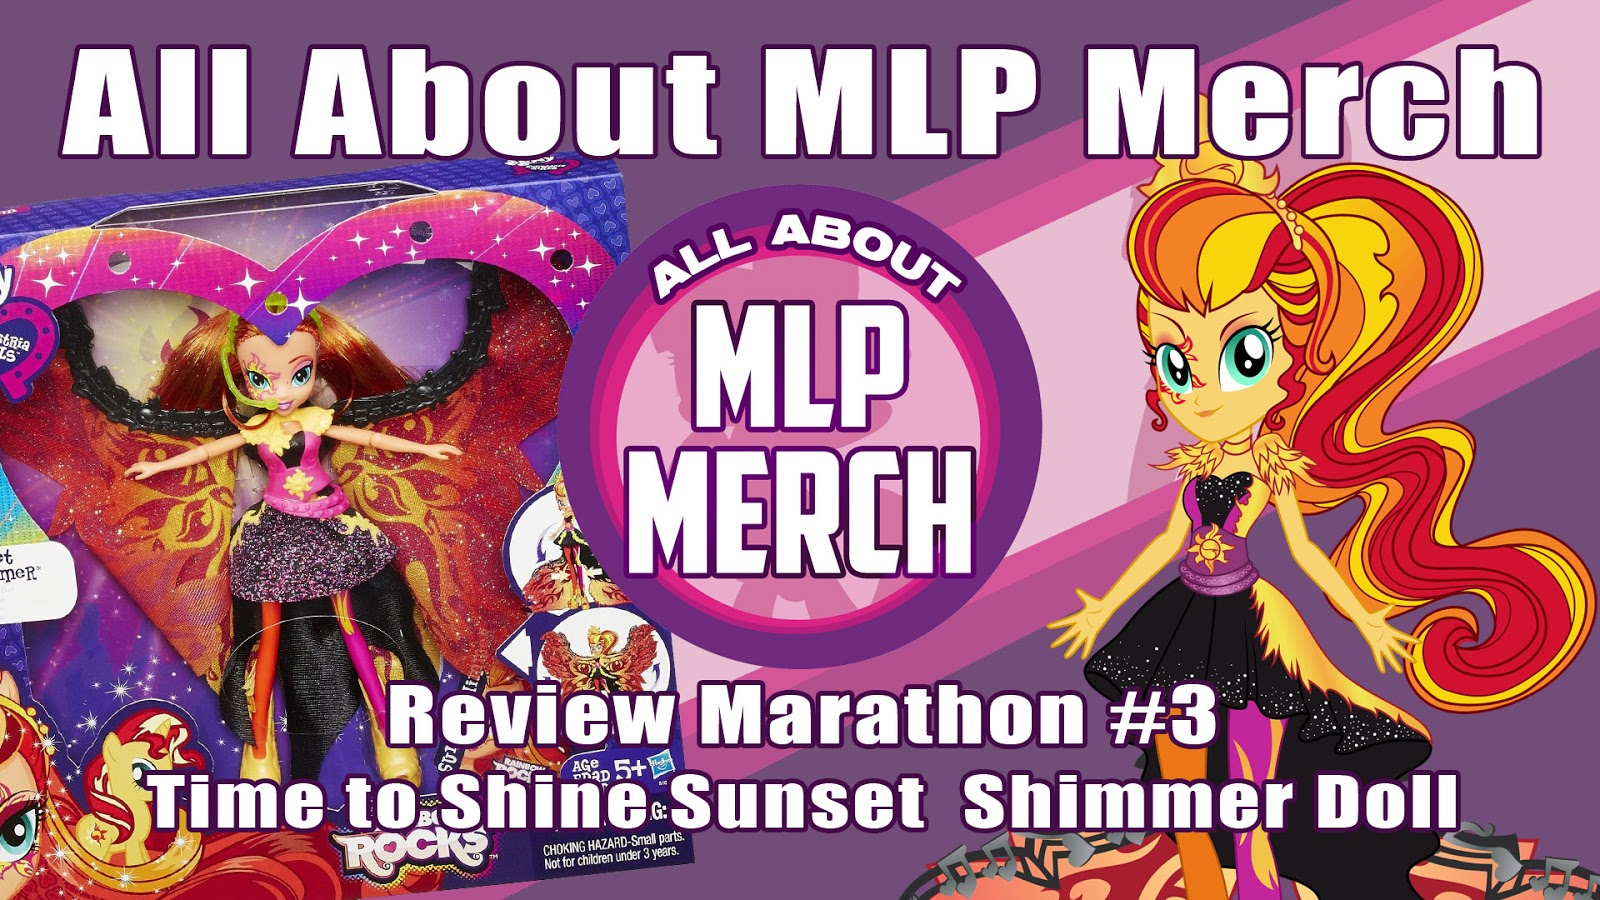 Review Marathon #3 - Sunset Shimmer Time to Shine Doll